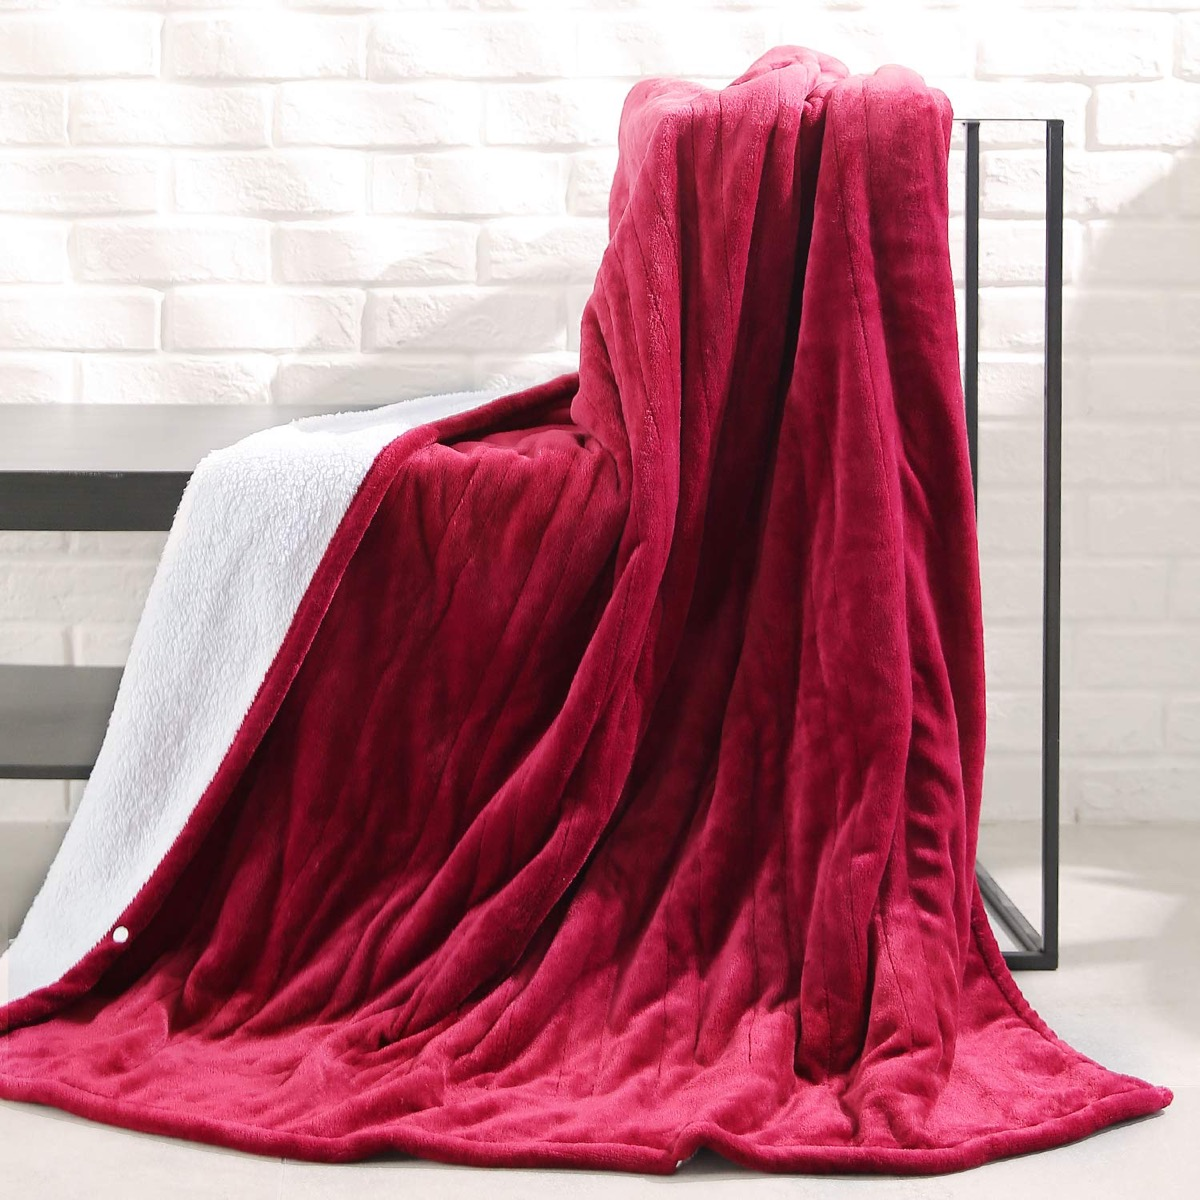 maroon blanket with white fleece lining draped over bench